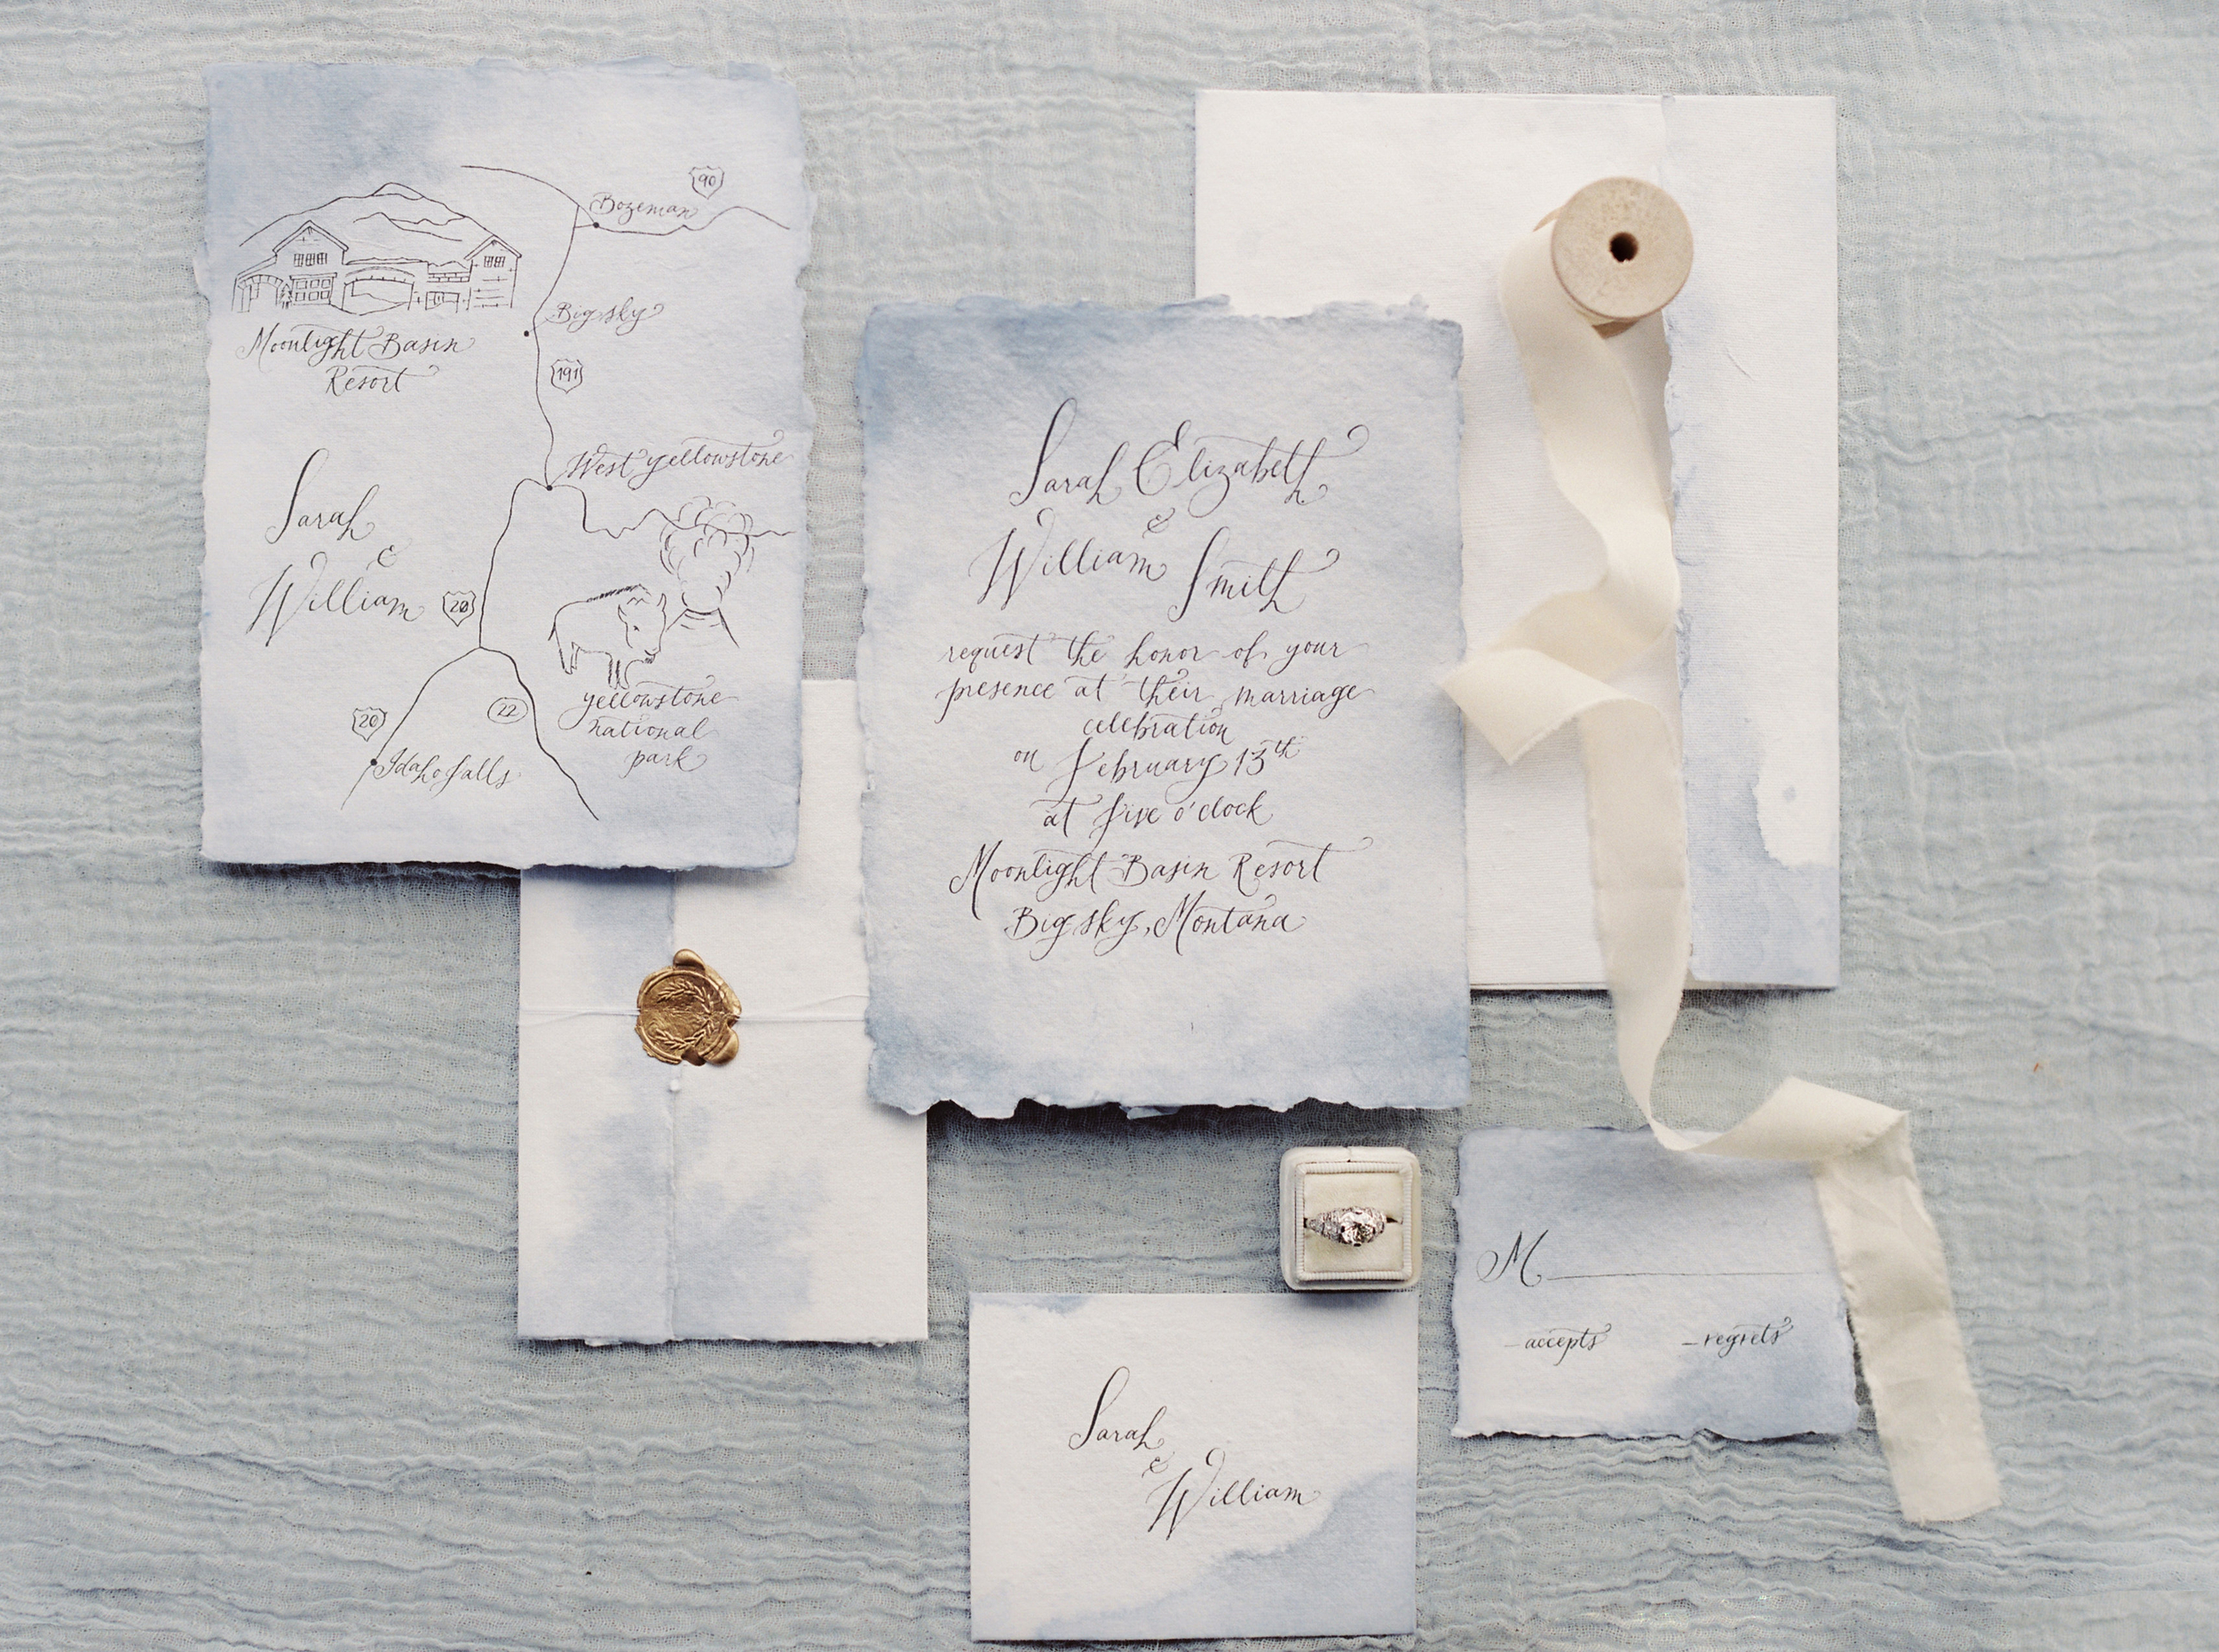 Paper & Calligraphy: Spurlé Gul Studio | Photography: Simply Sarah Photography | Planning & Styling: Bash Bozeman